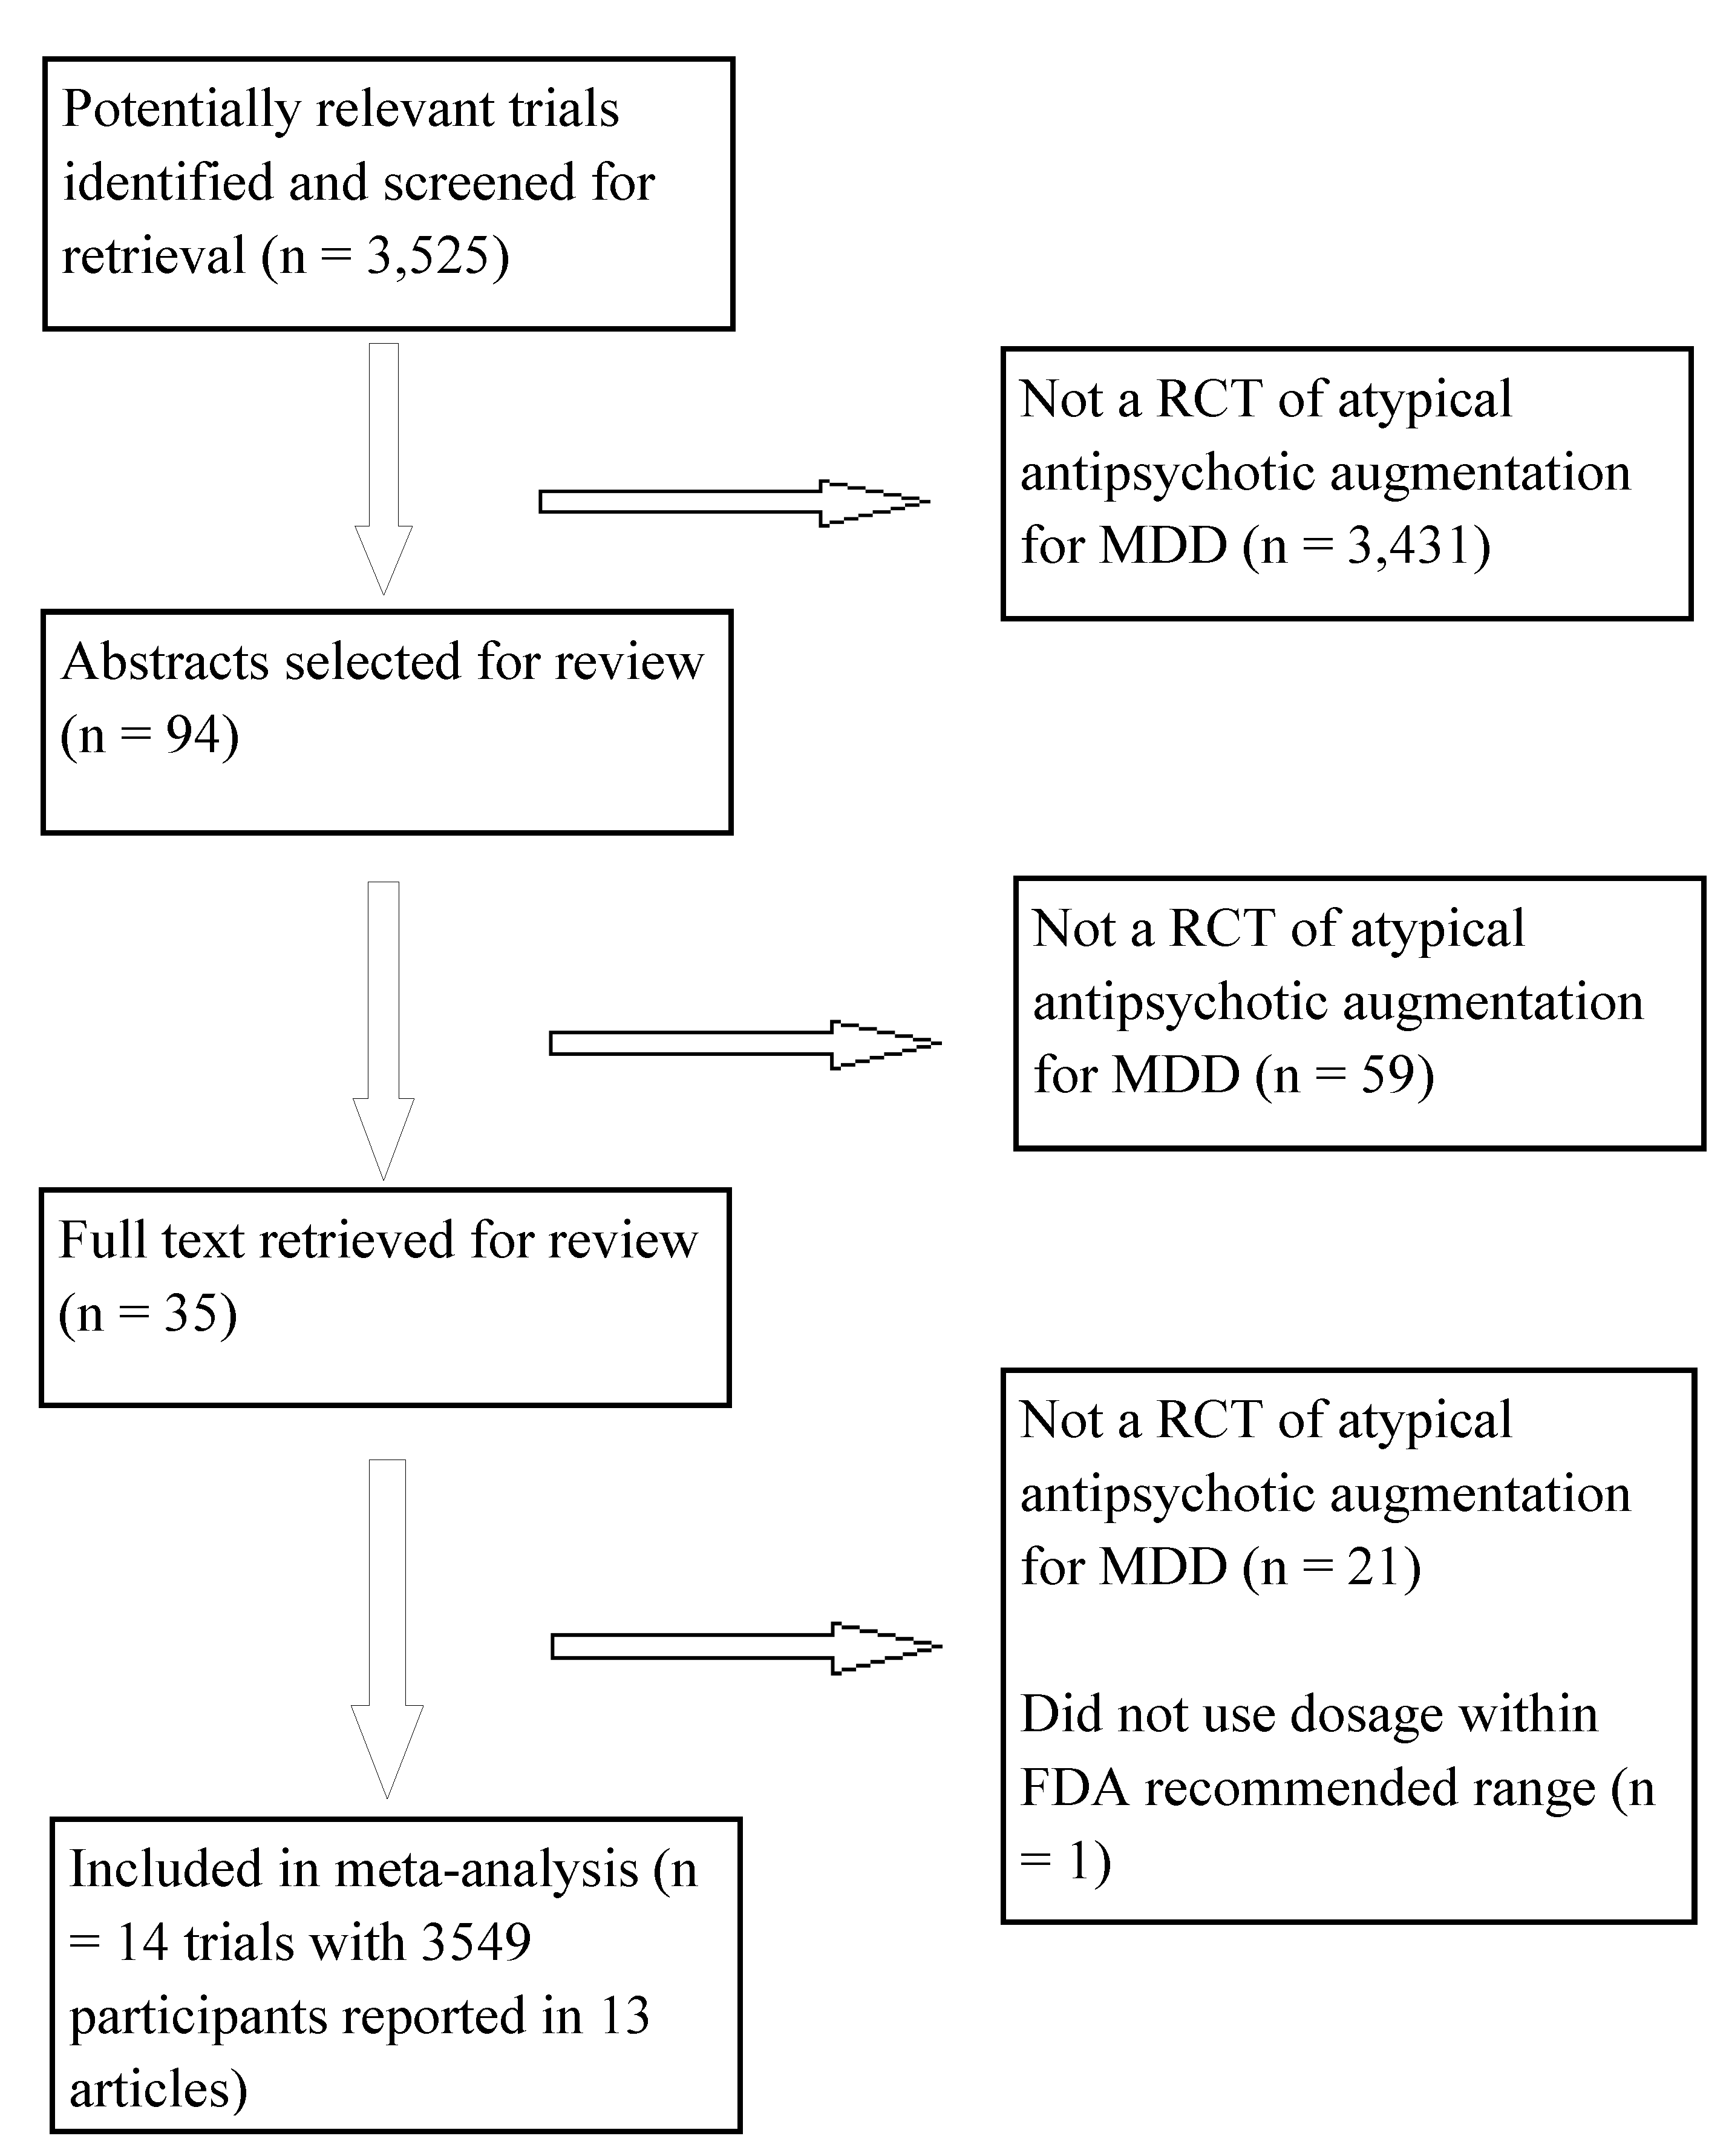 Flowchart of published studies examined for inclusion in meta-analysis.